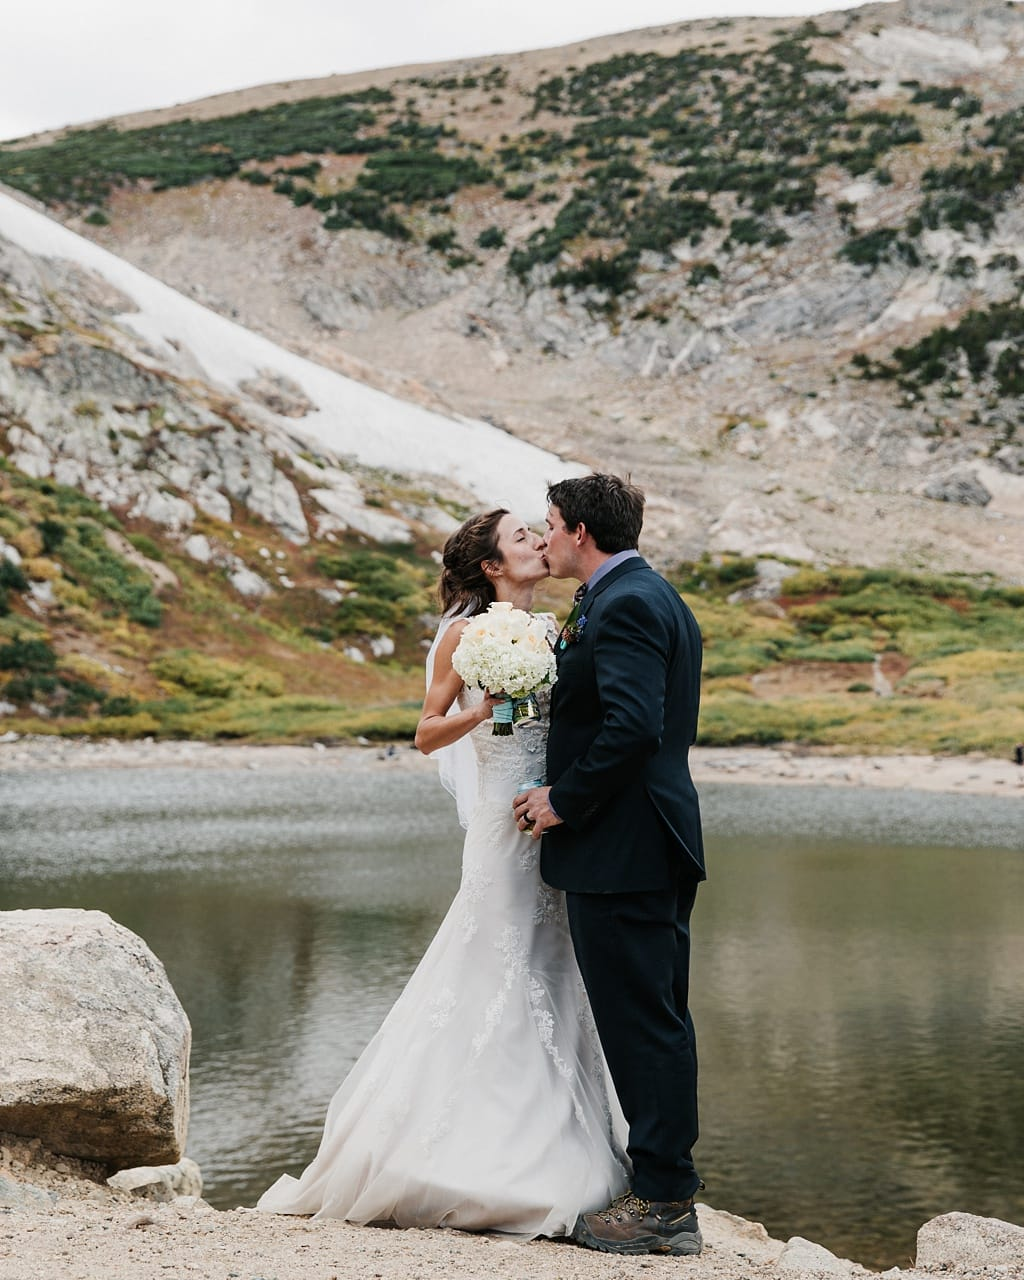 Bride and groom portraits after outdoor ceremony at St. Mary's Glacier elopement hiking wedding